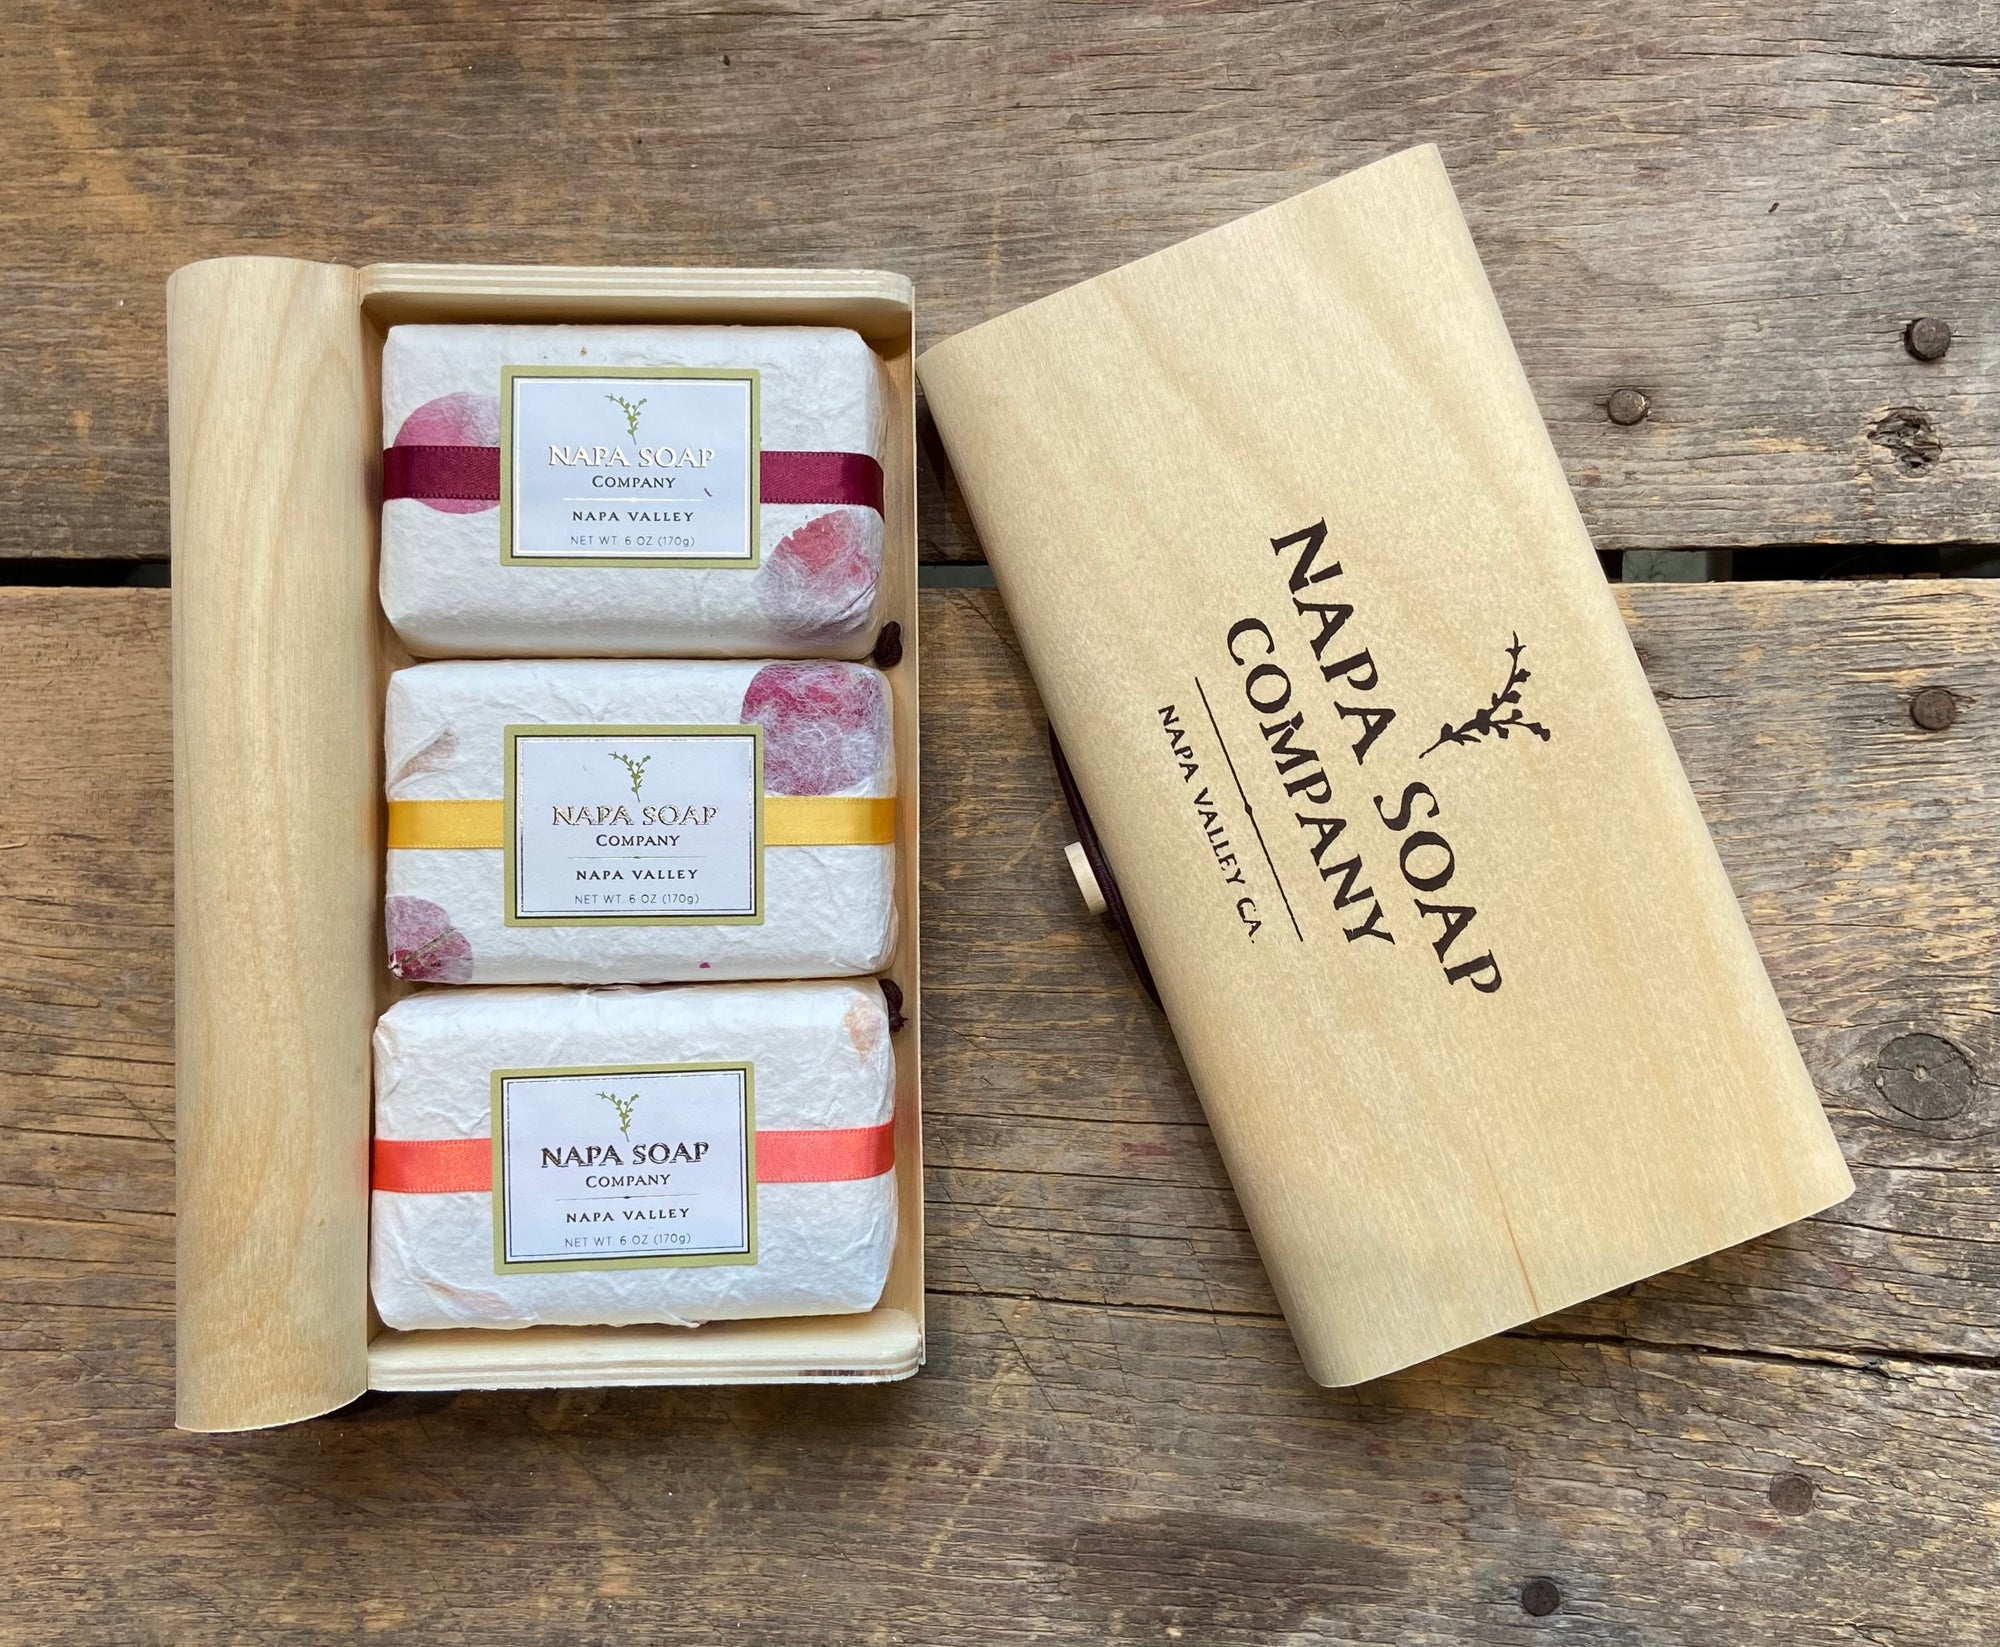 3 Bar Gift Box - Wine Lovers - Napa Soap Company